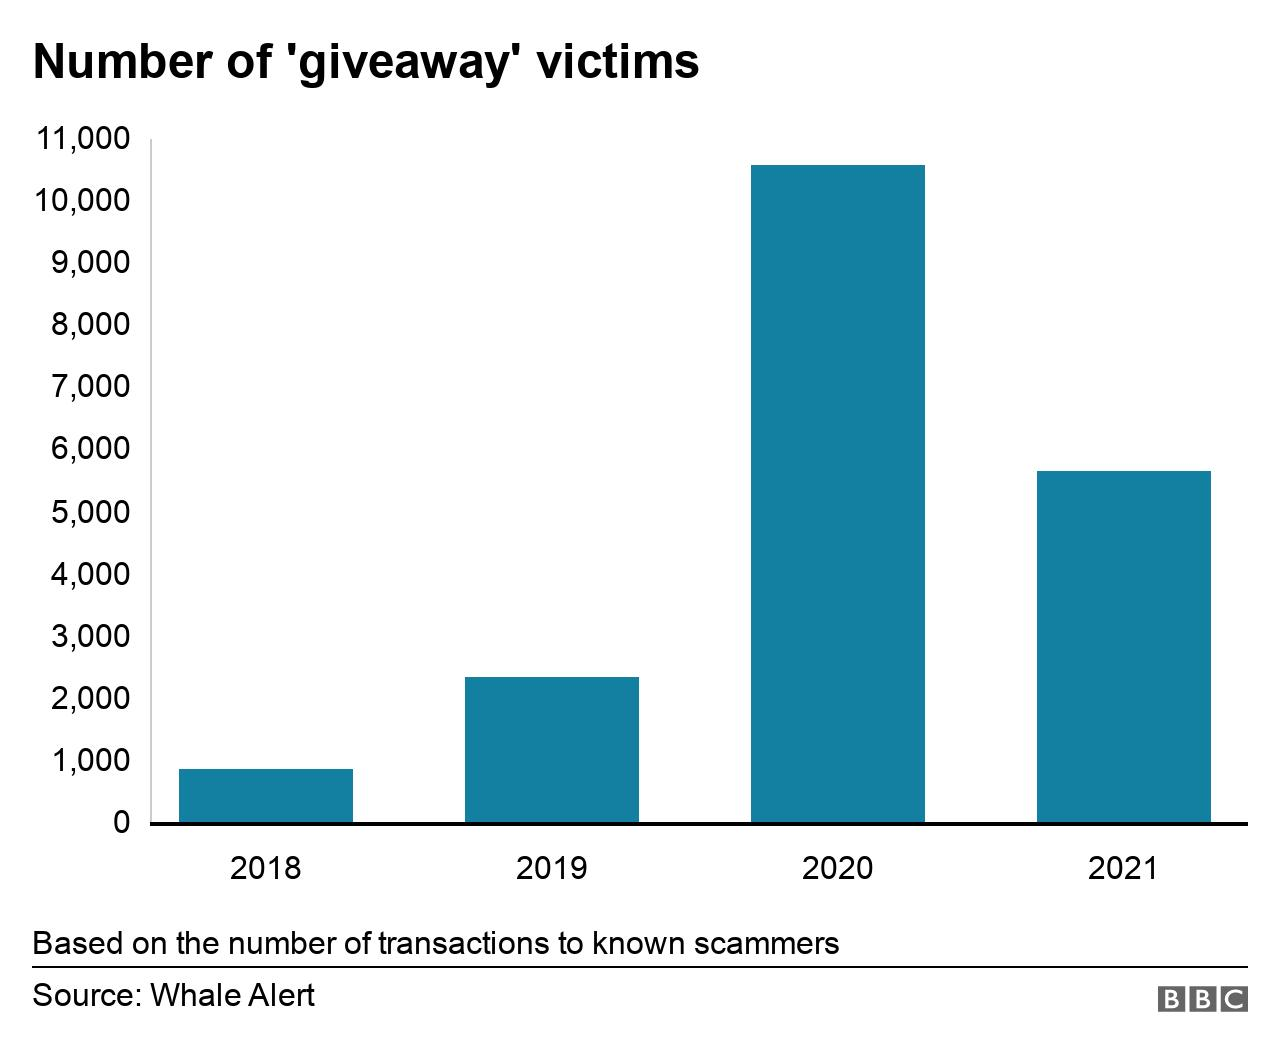 Chart showing the number of giveaway victims from 2018 to 2021